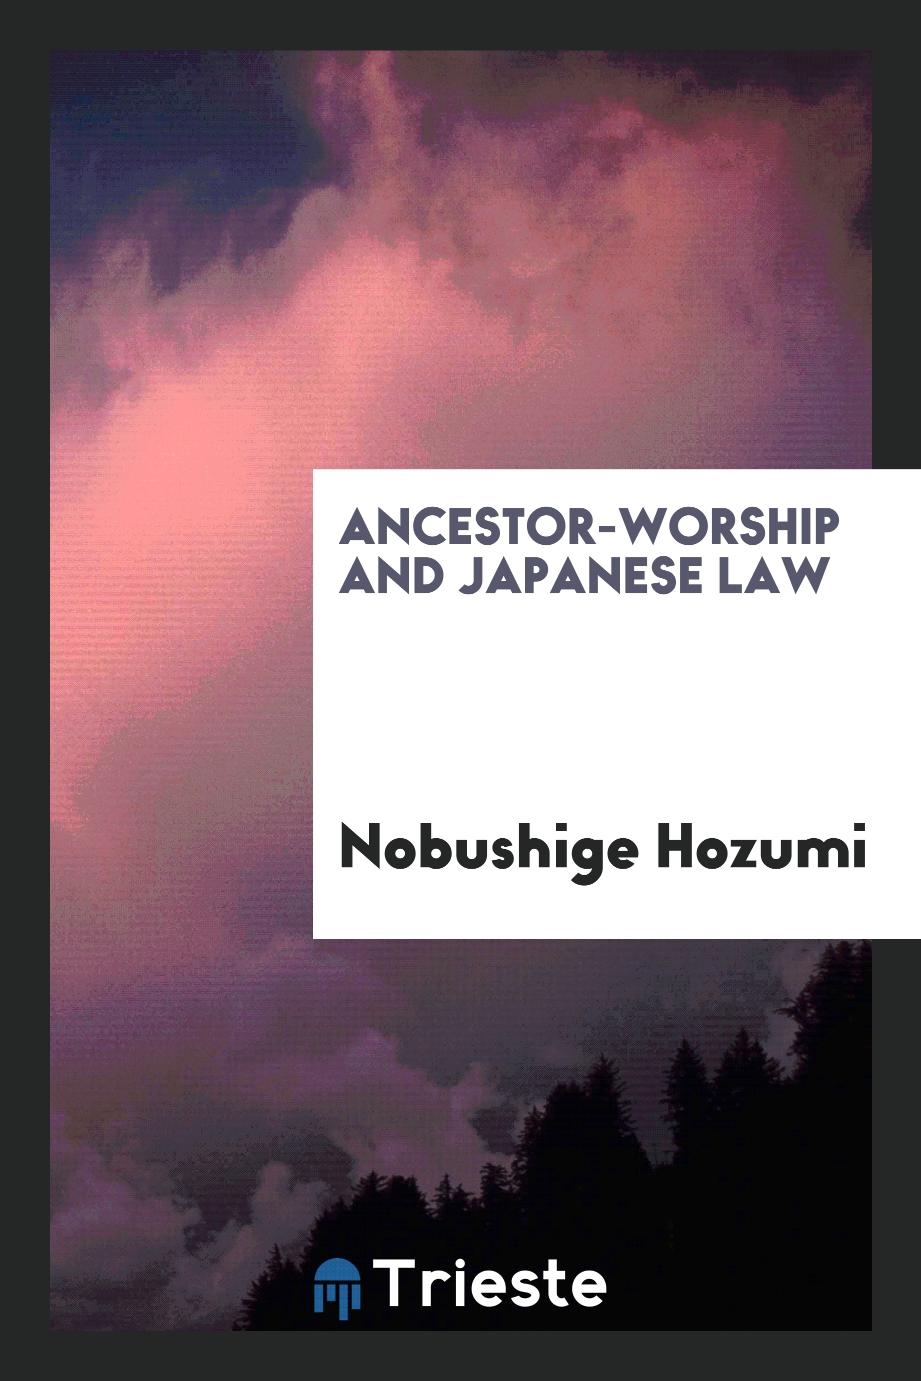 Ancestor-worship and Japanese Law